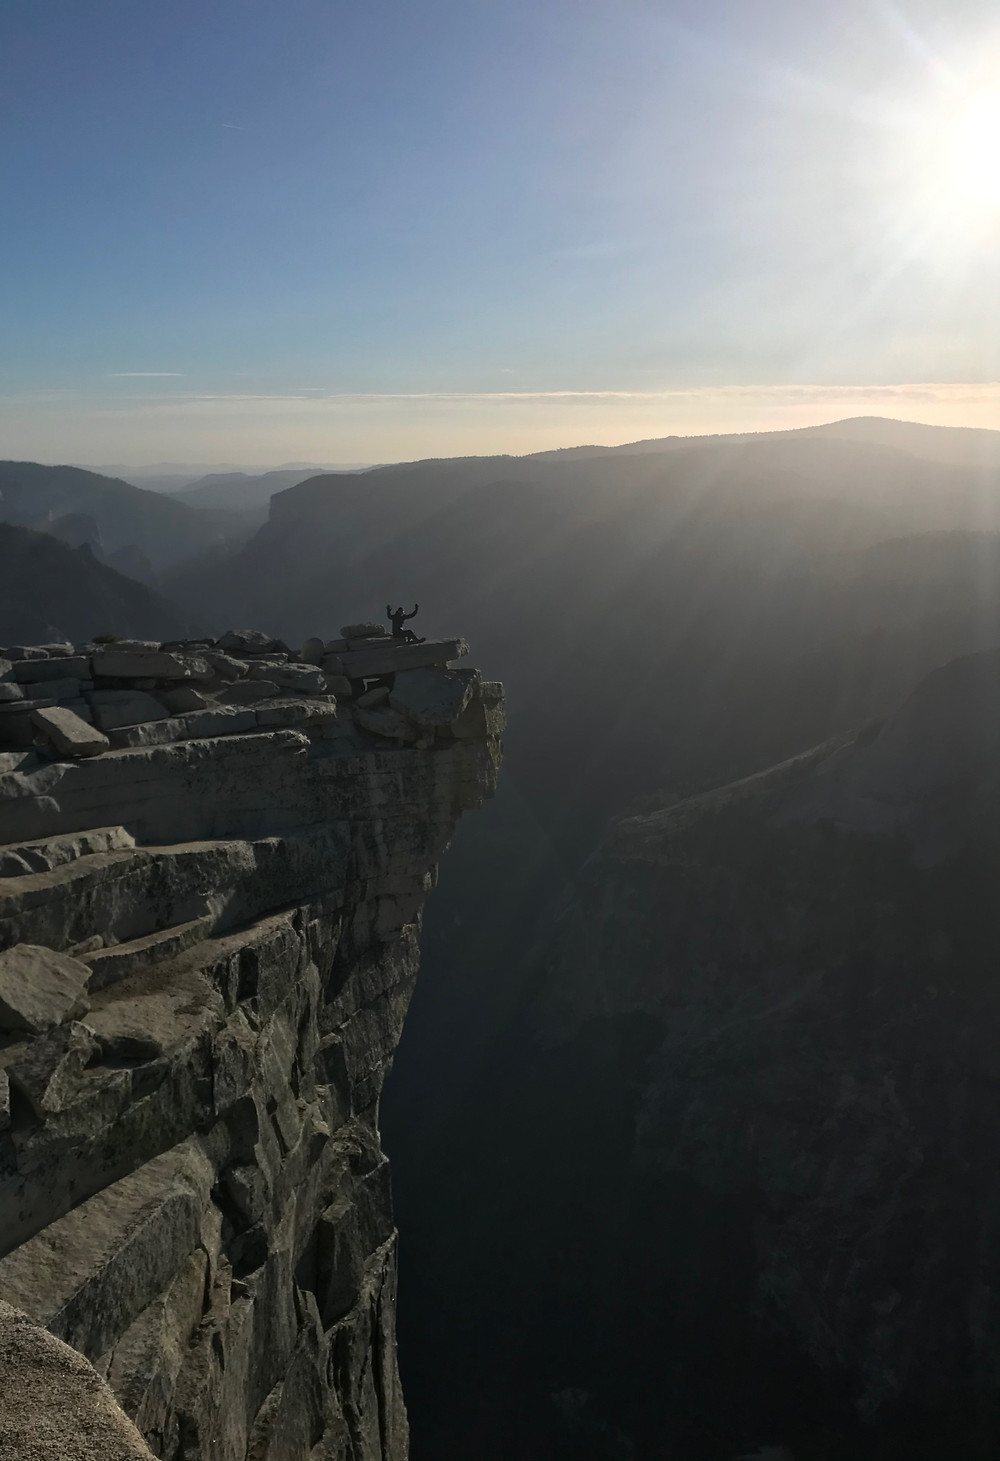 A man sitting on the edge of a cliff, hands up to celebrate the end of a long climb and sun rays shining down